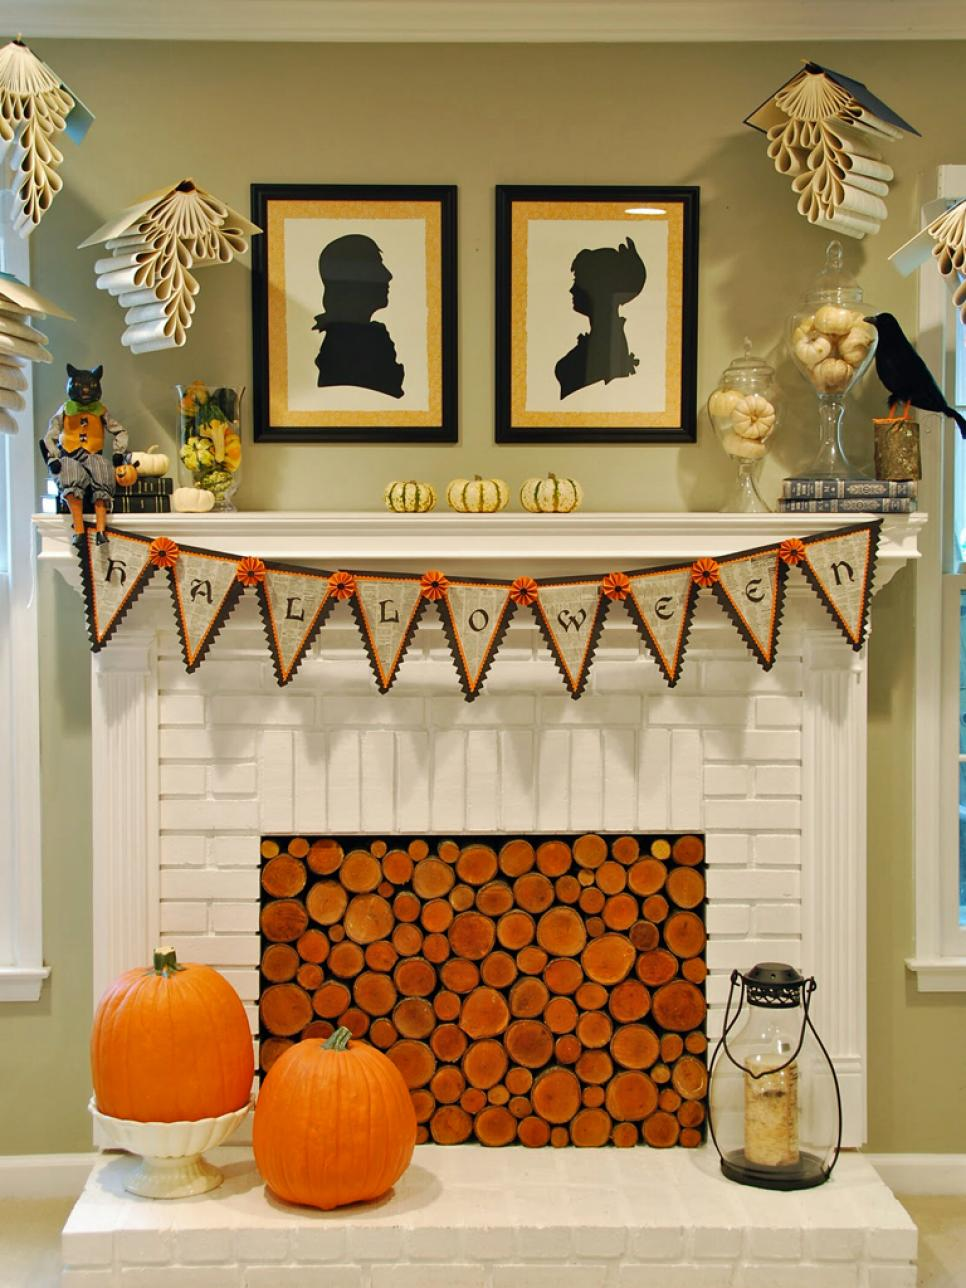 Fall decorating, fall décor, Halloween décor, http://screamingwifi.com, wifi, wi-fi, internet service, Home audio system, multi-room music system, sonos, casatunes, home speakers, house speakers, house sound system, http://automated-lifestyles.com, automated lifestyles, automated lifestyles Moscow pa, automated lifestyles Pennsylvania, home automation, home monitoring, automated home, automatic home, smart home, automatic window blinds, automatic window shades, surveillance camera, home security, business security, office security system, security system, security camera, home theater, home theater design, home theatre, home network, home control, control home ipad, control home iphone, home speakers, Lutron lights, Lutron lighting, Lighting control, automatic lighting, Multi-room music, Whole house music, Speakers, Audio visual, room music, Meeting room av, Meeting room audio visual, meeting room projector, meeting room screen, office projector, conference room, boardroom, automated meeting room, automatic meeting room, Window candles